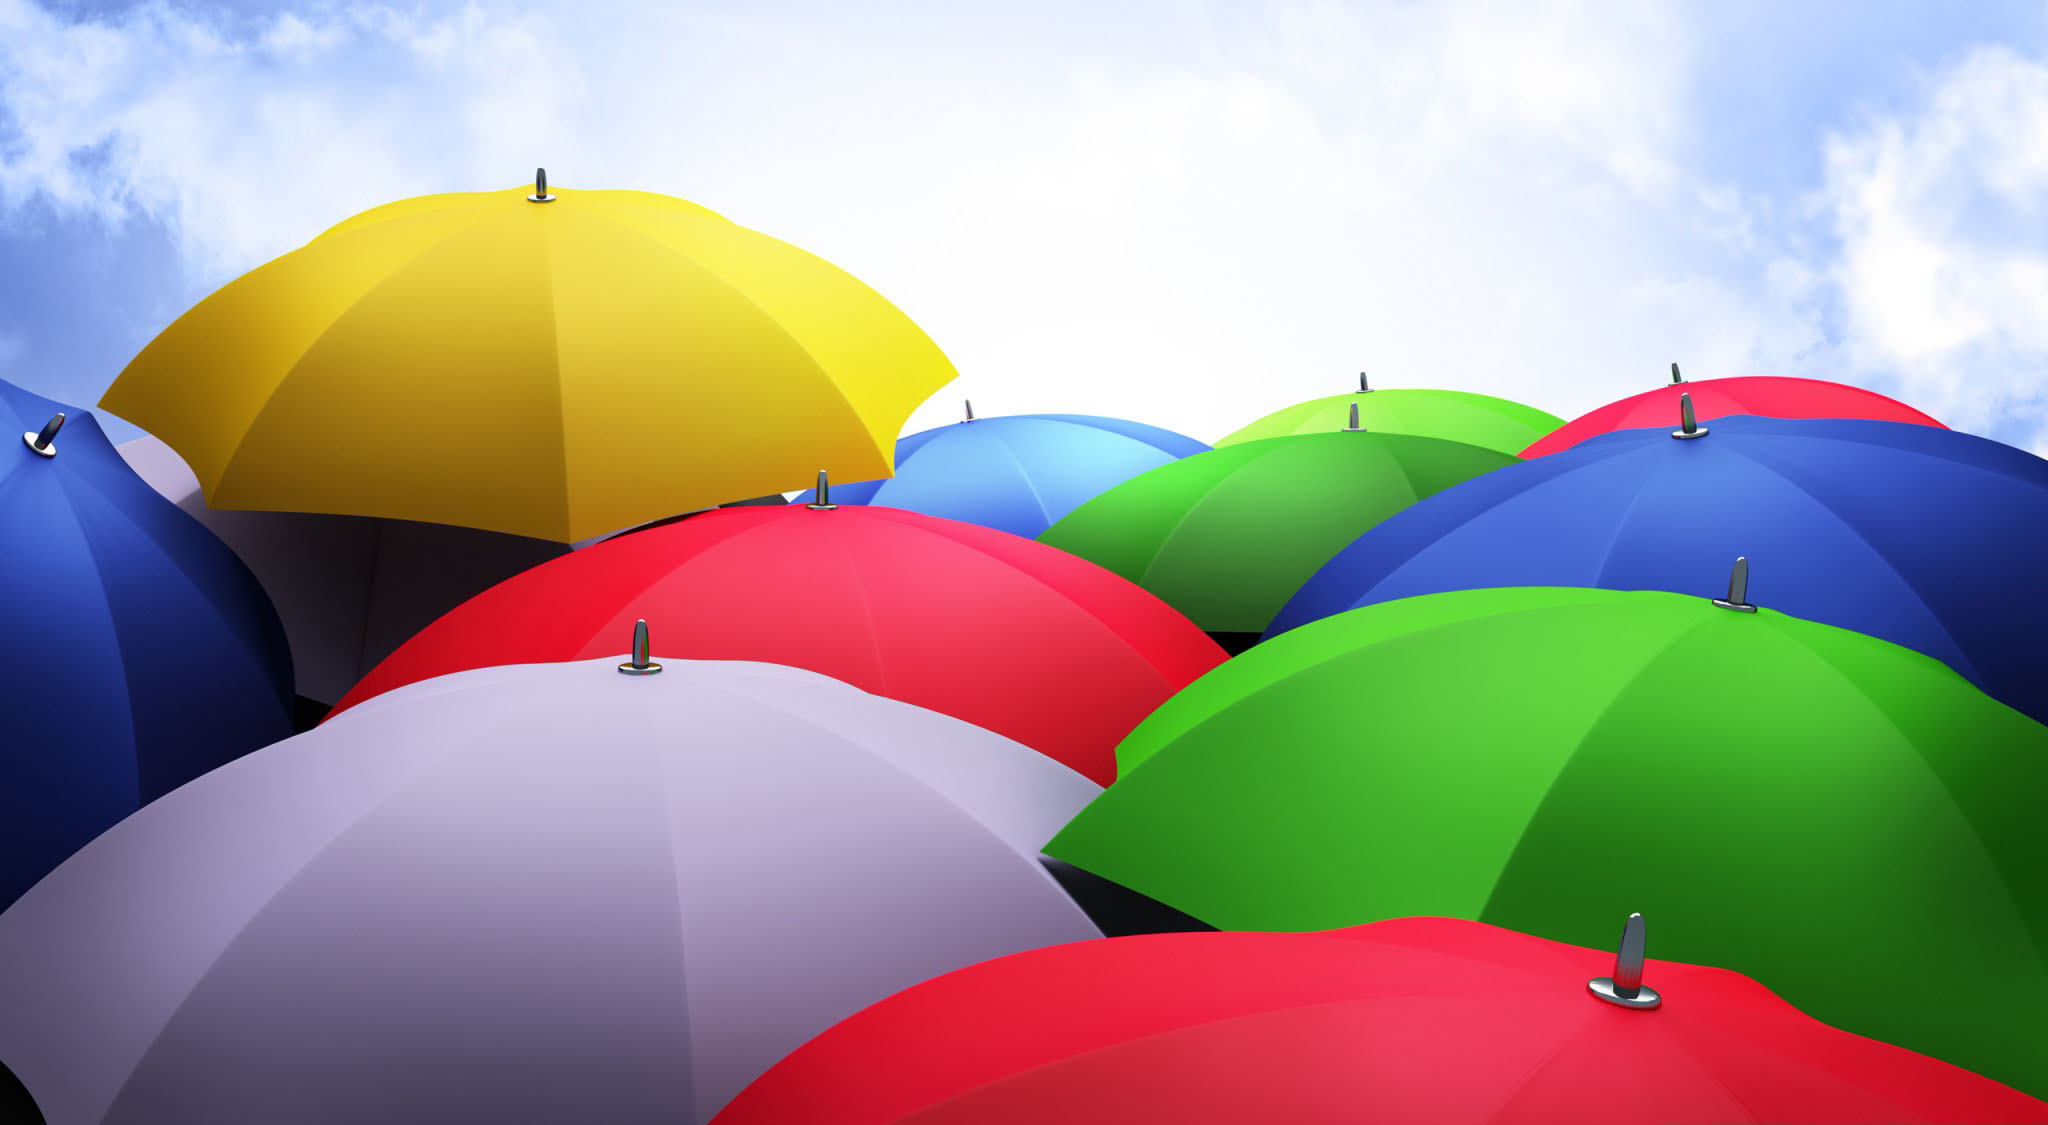 colorful_umbrellas-2048x1152